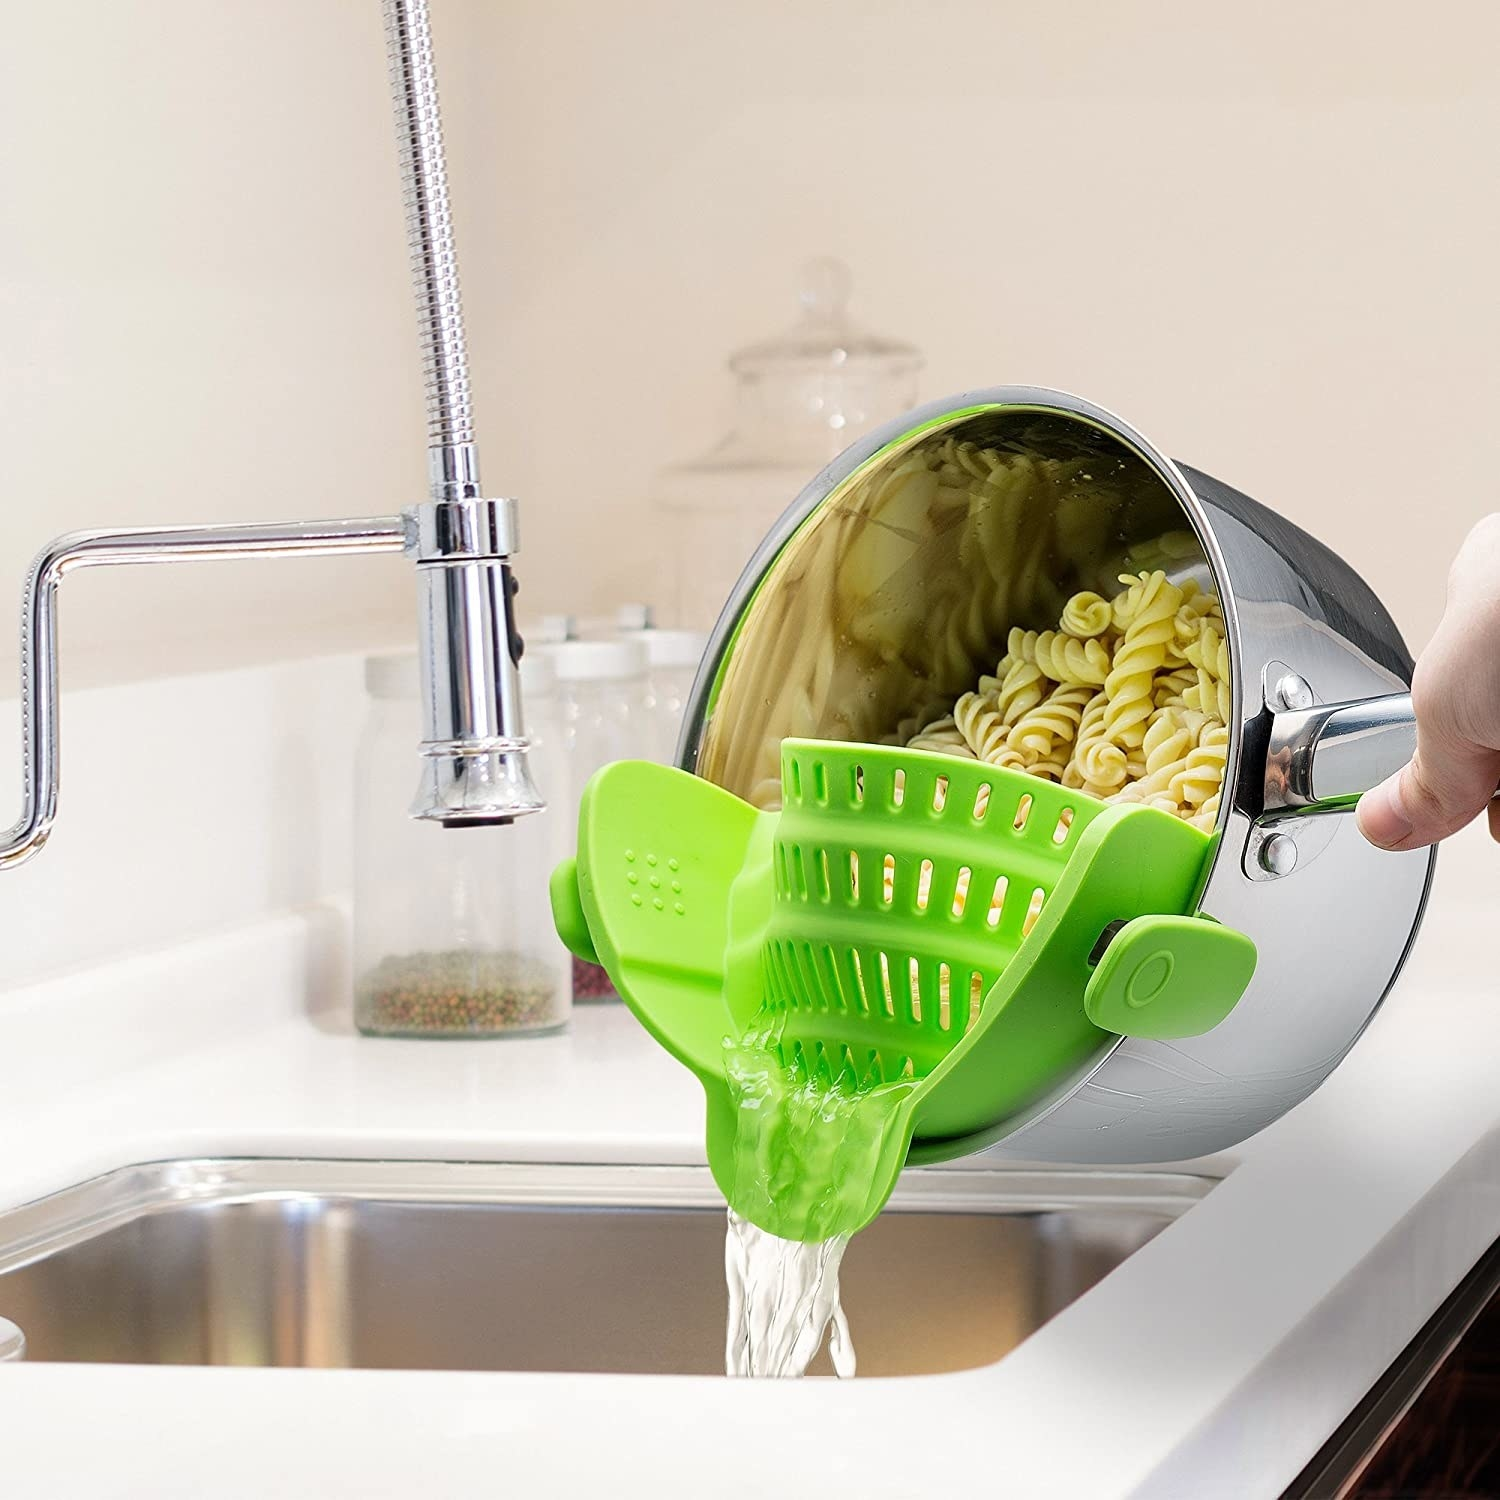 person using a green snap on strainer to drain the water from a pot of pasta